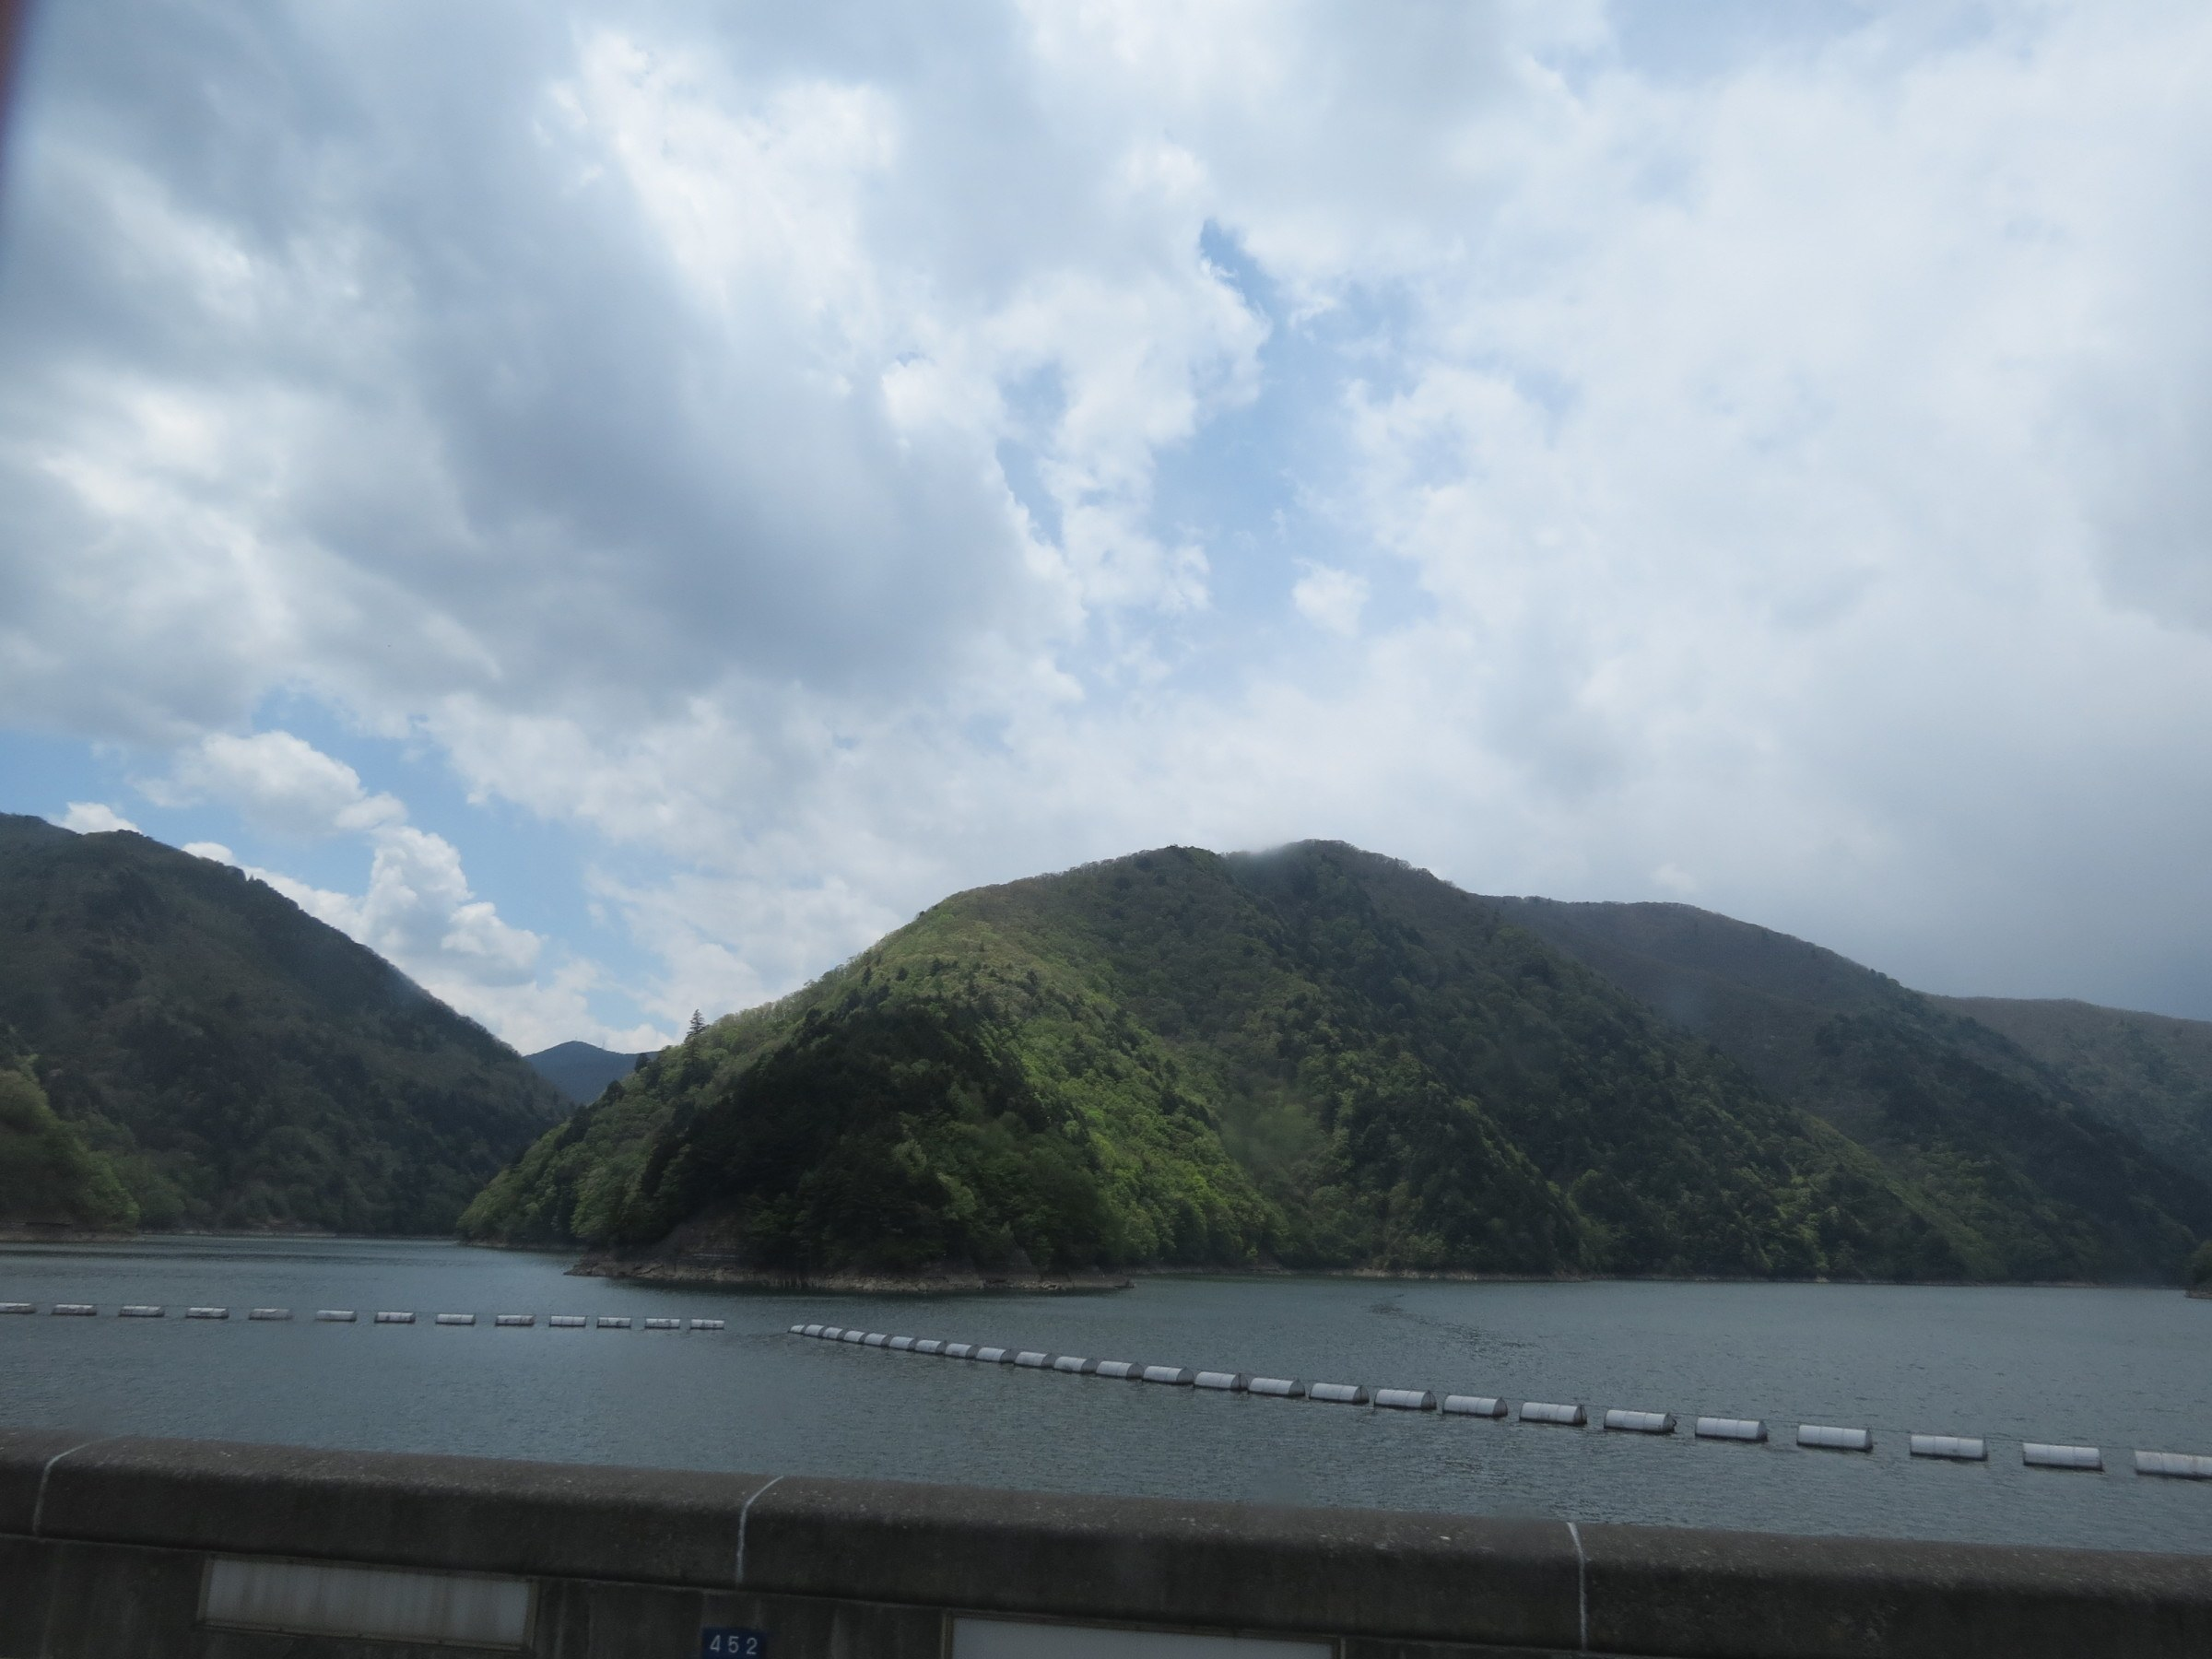 The view when travelling by bus from Matsumoto to Takayama